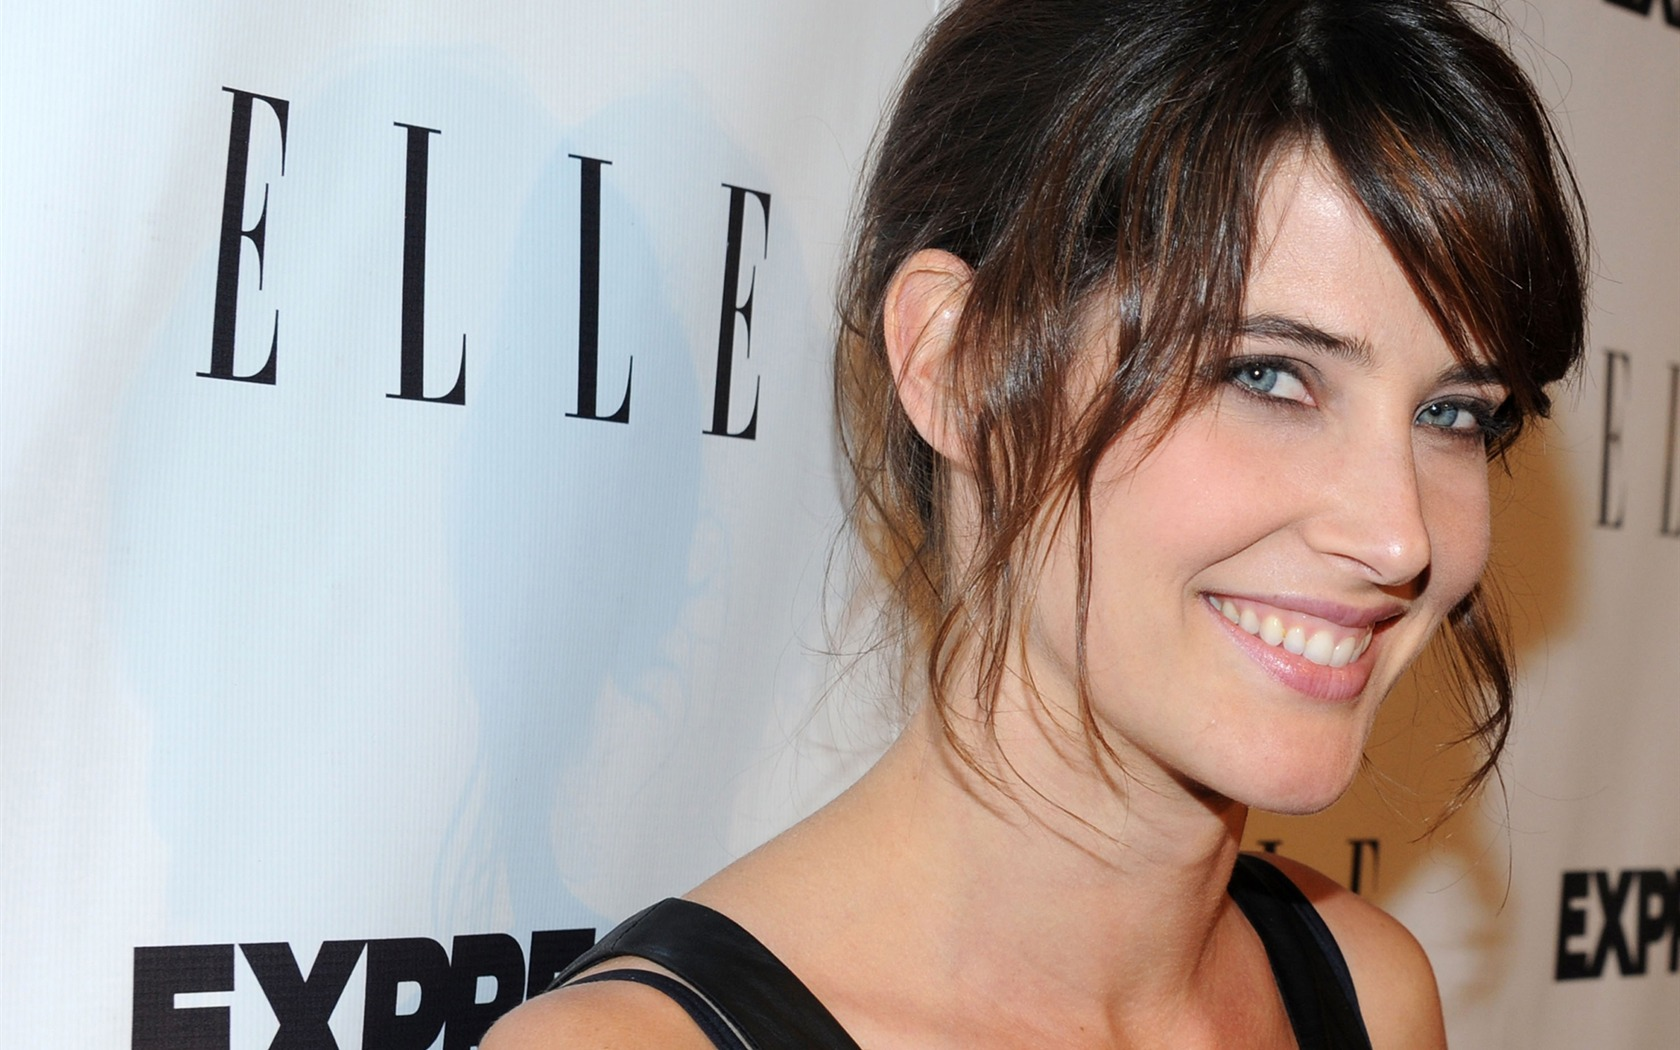 Cobie Smulders #015 - 1680x1050 Wallpapers Pictures Photos Images